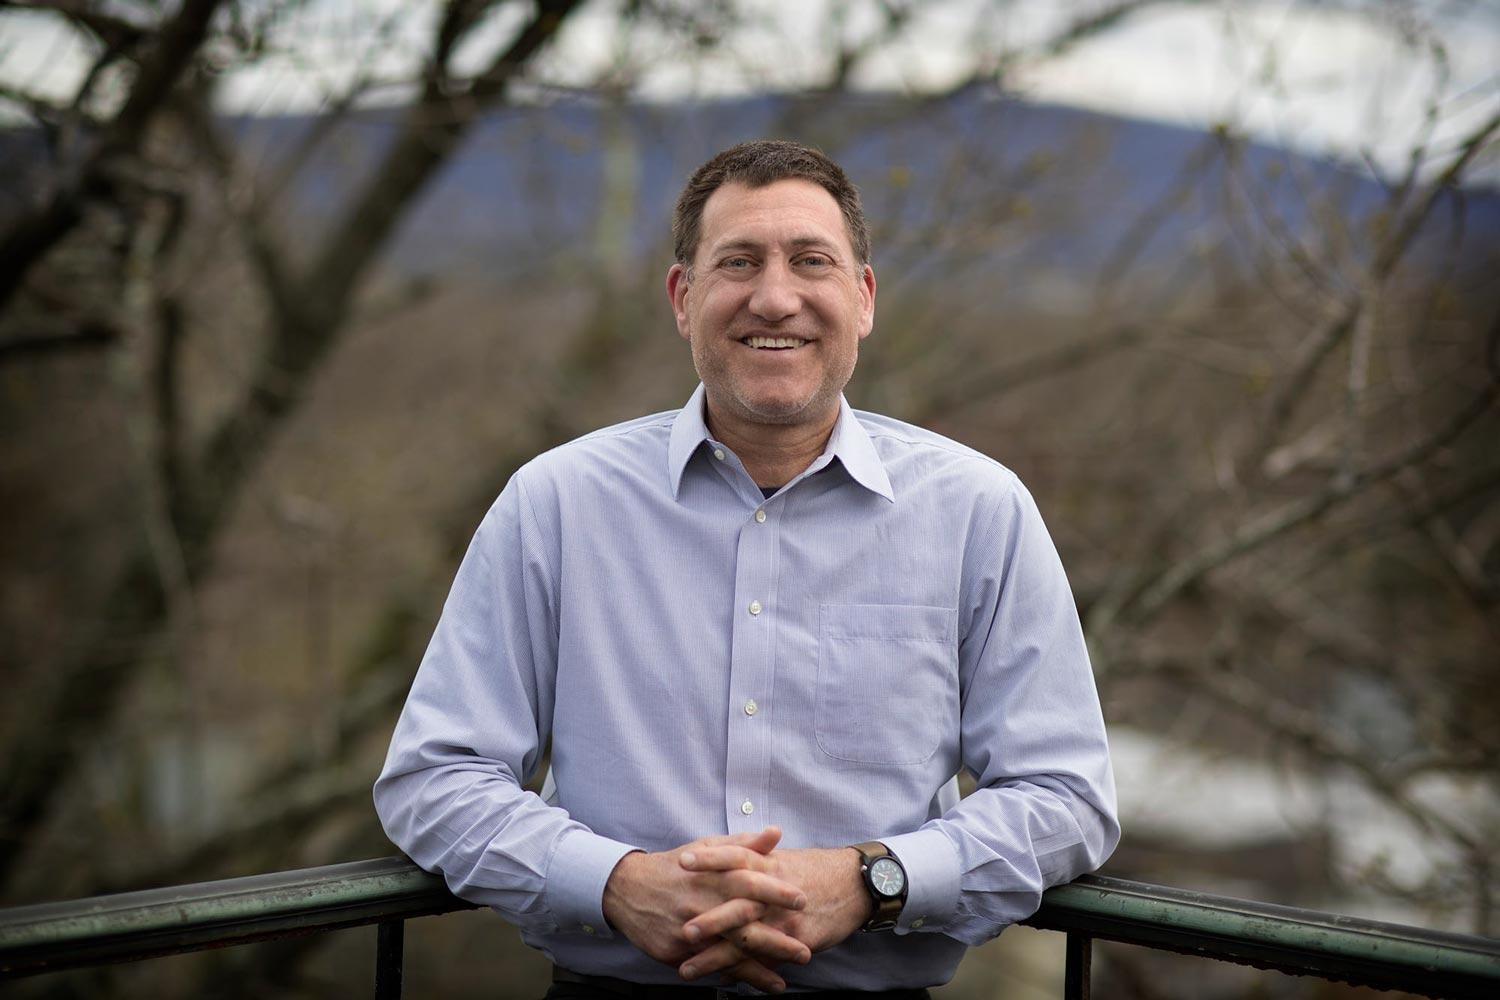 Environmental sciences professor Howie Epstein has won a new grant from NASA to use satellite imagery to track the greening of the Arctic.